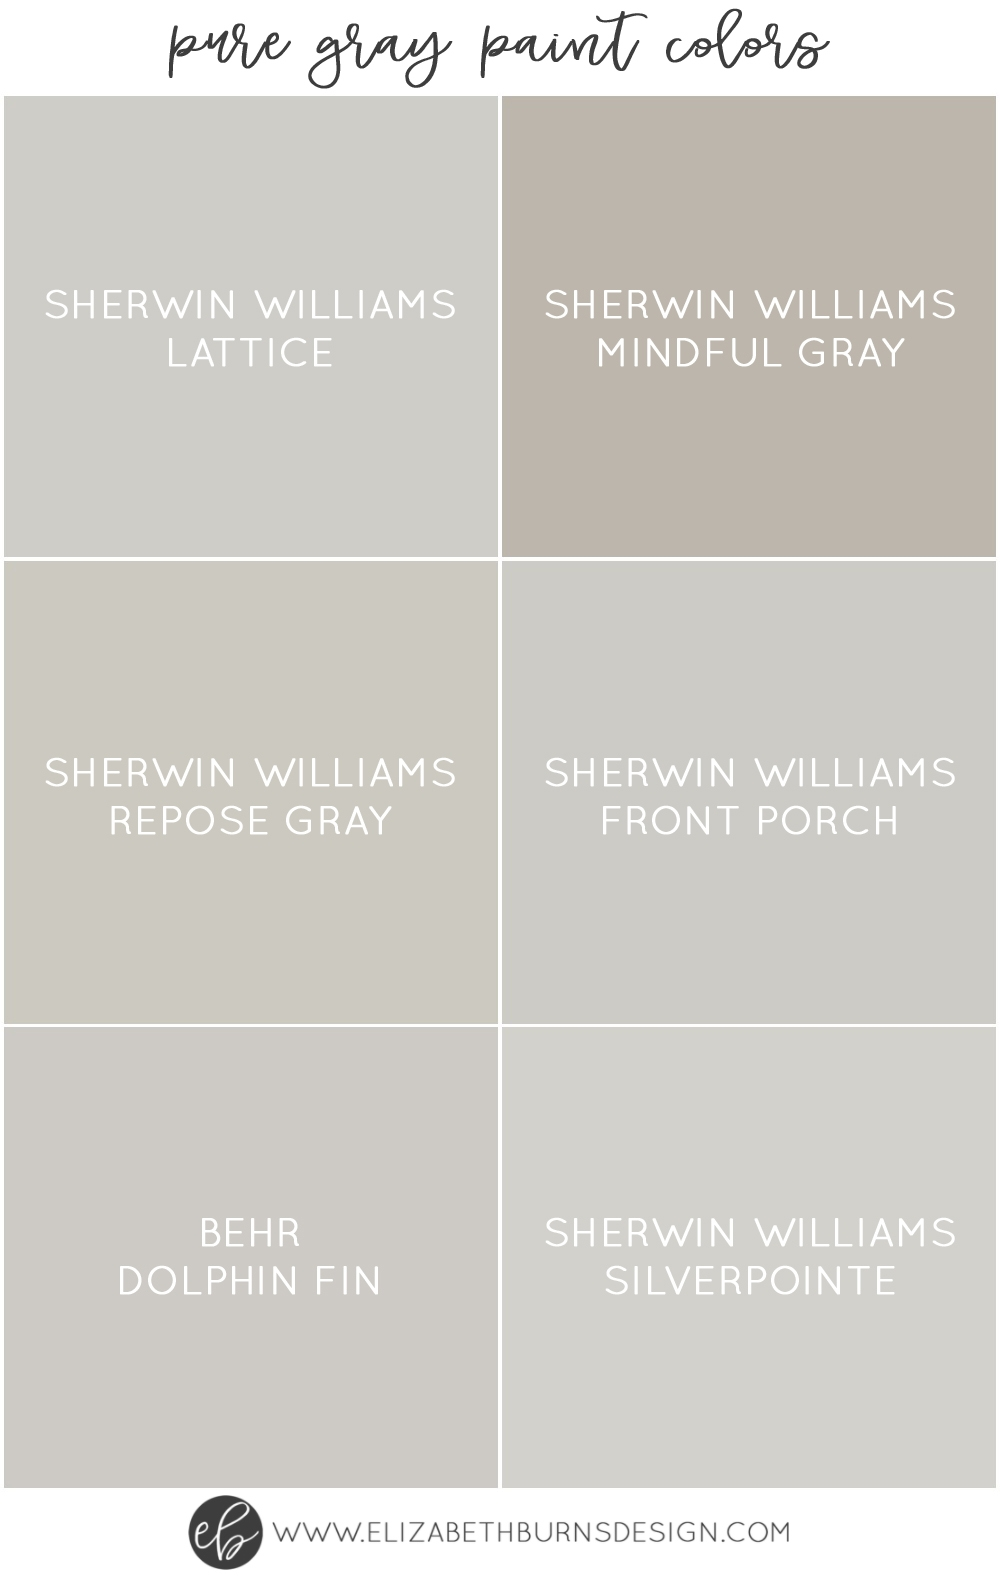 The Best Pure Grey Paint Colors Paint Guide Elizabeth Burns Design Raleigh Nc Interior Designer